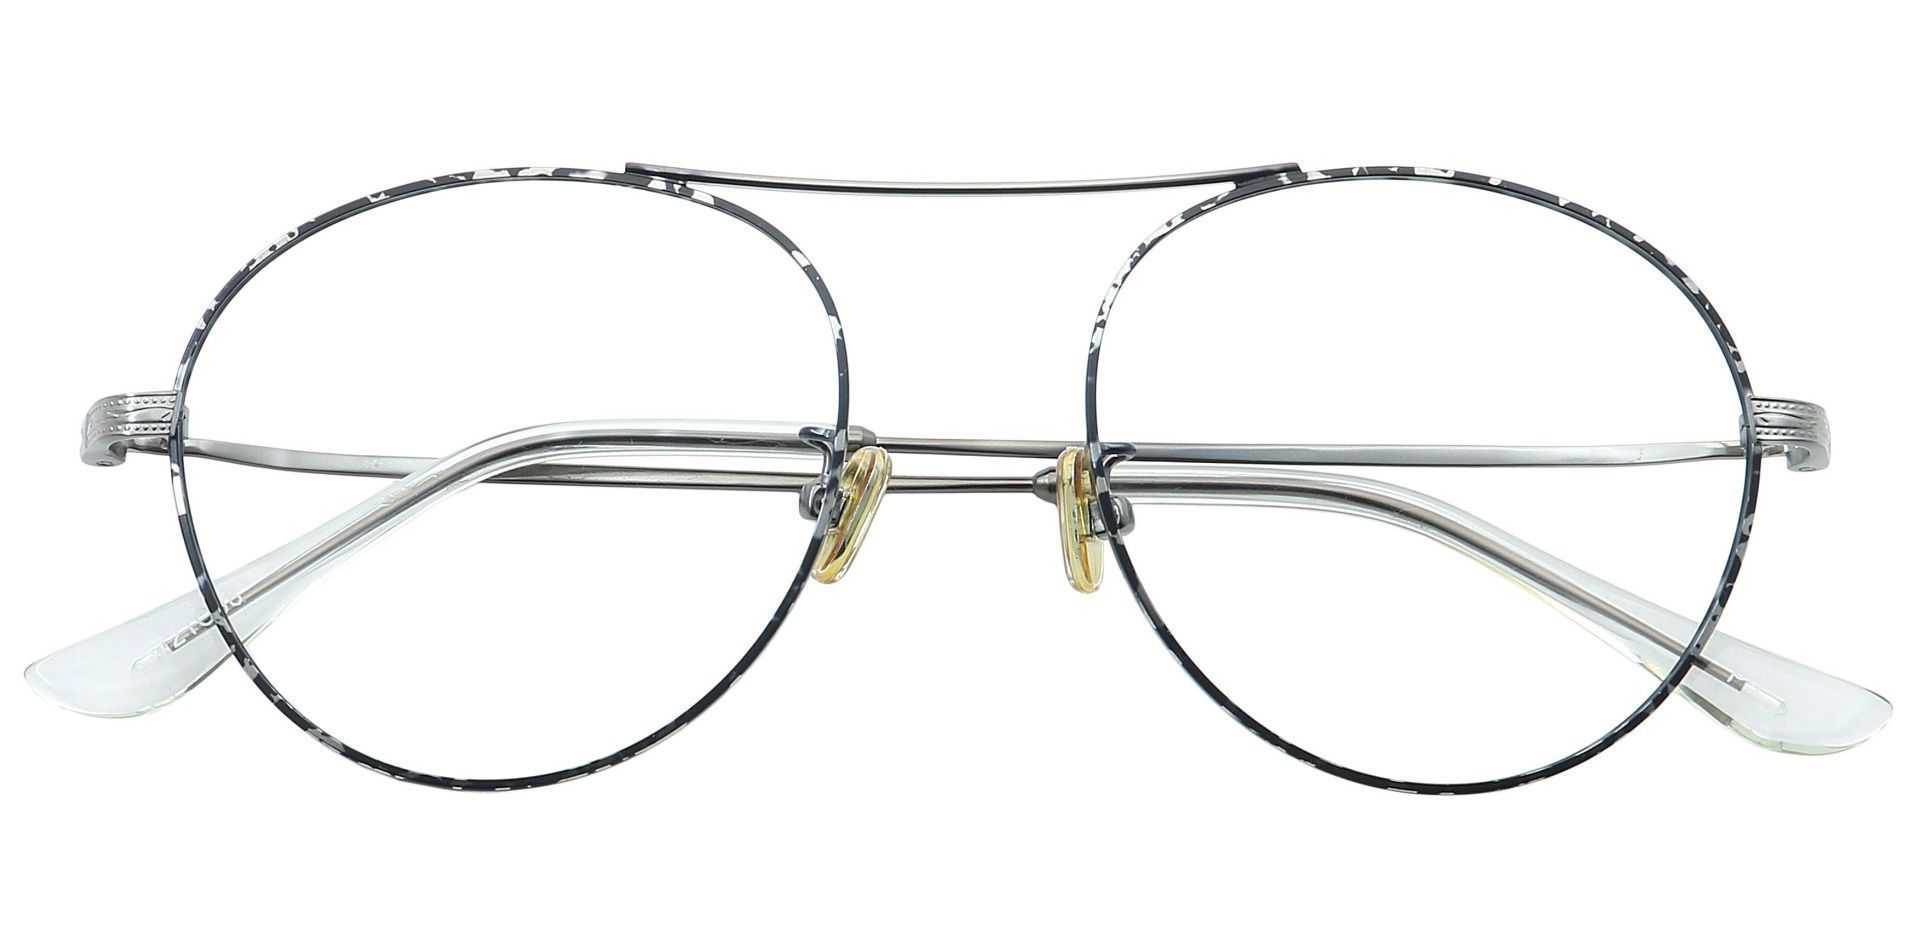 Finn Round Progressive Glasses - Gray